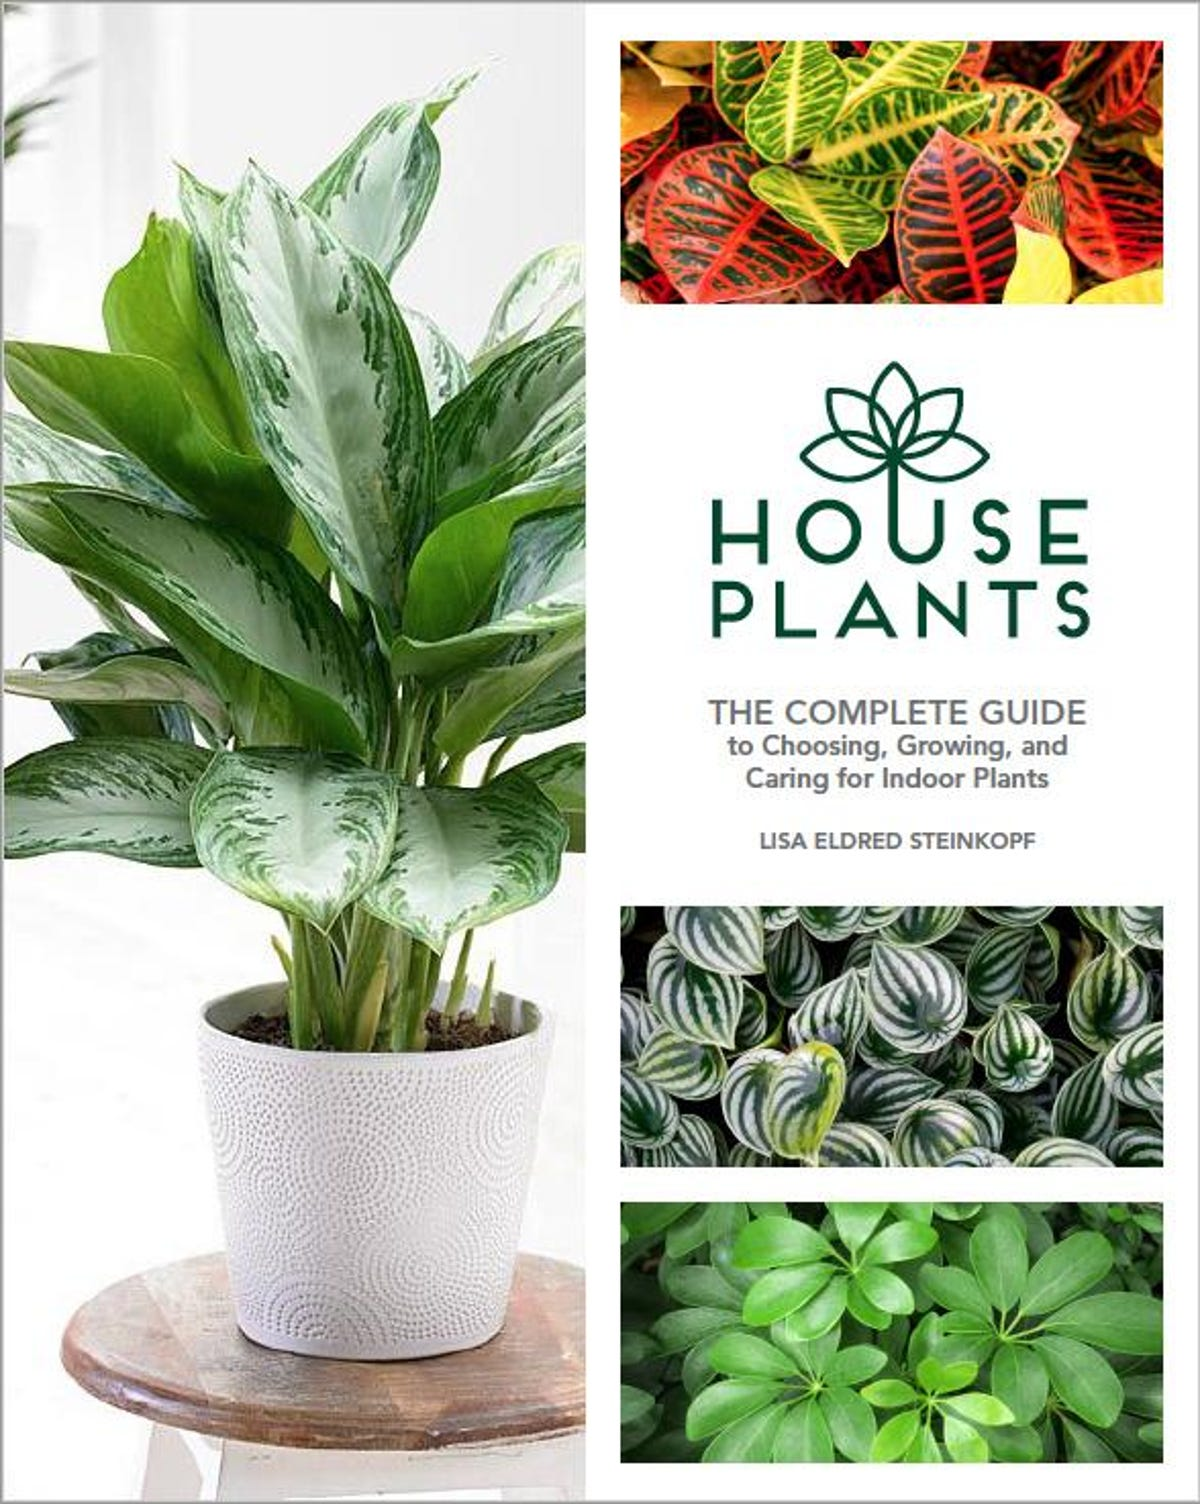 Pleasing Book Teaches The Ins And Outs Of Houseplants Interior Design Ideas Clesiryabchikinfo